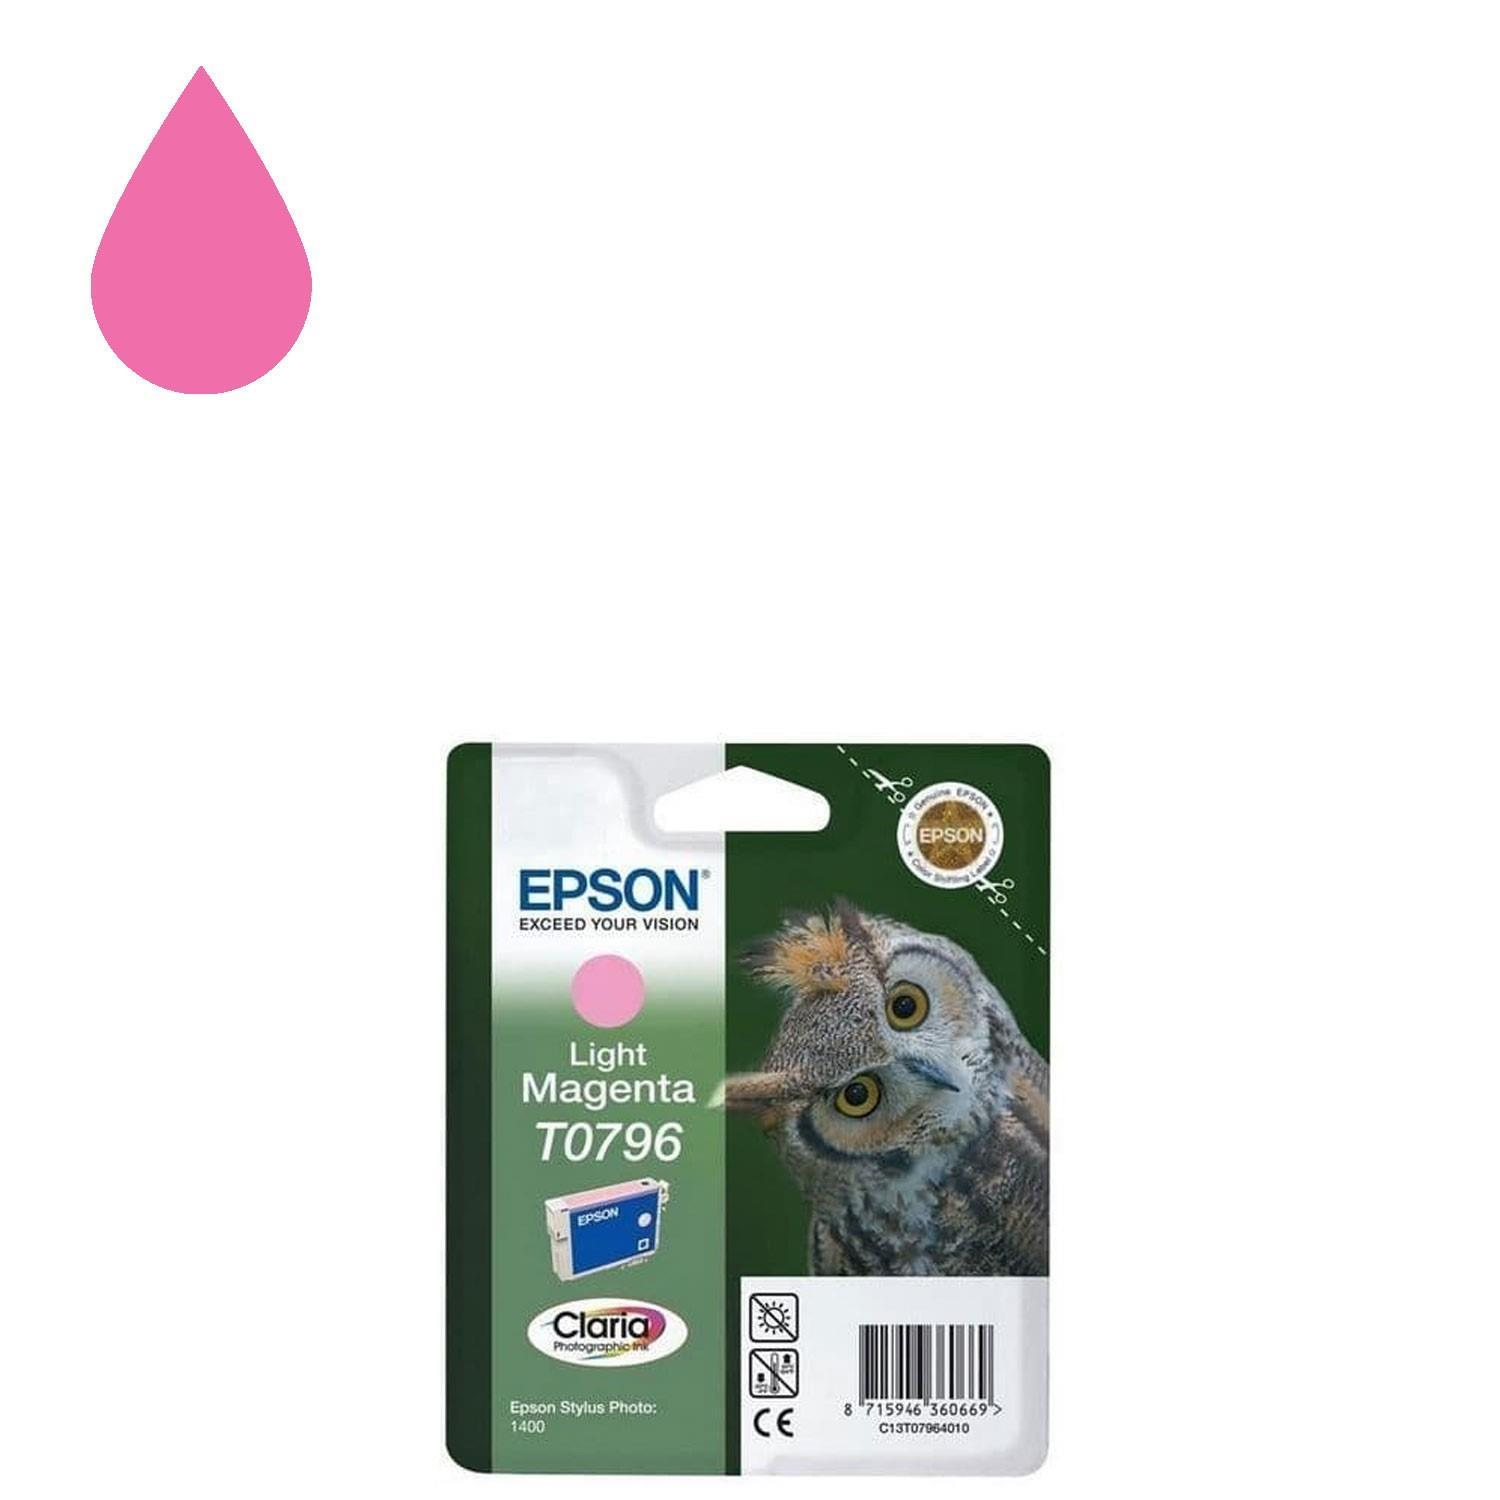 Genuine Epson Ink Owl Cartridge Light Magenta T0796 for Stylus Photo 1400 Printer